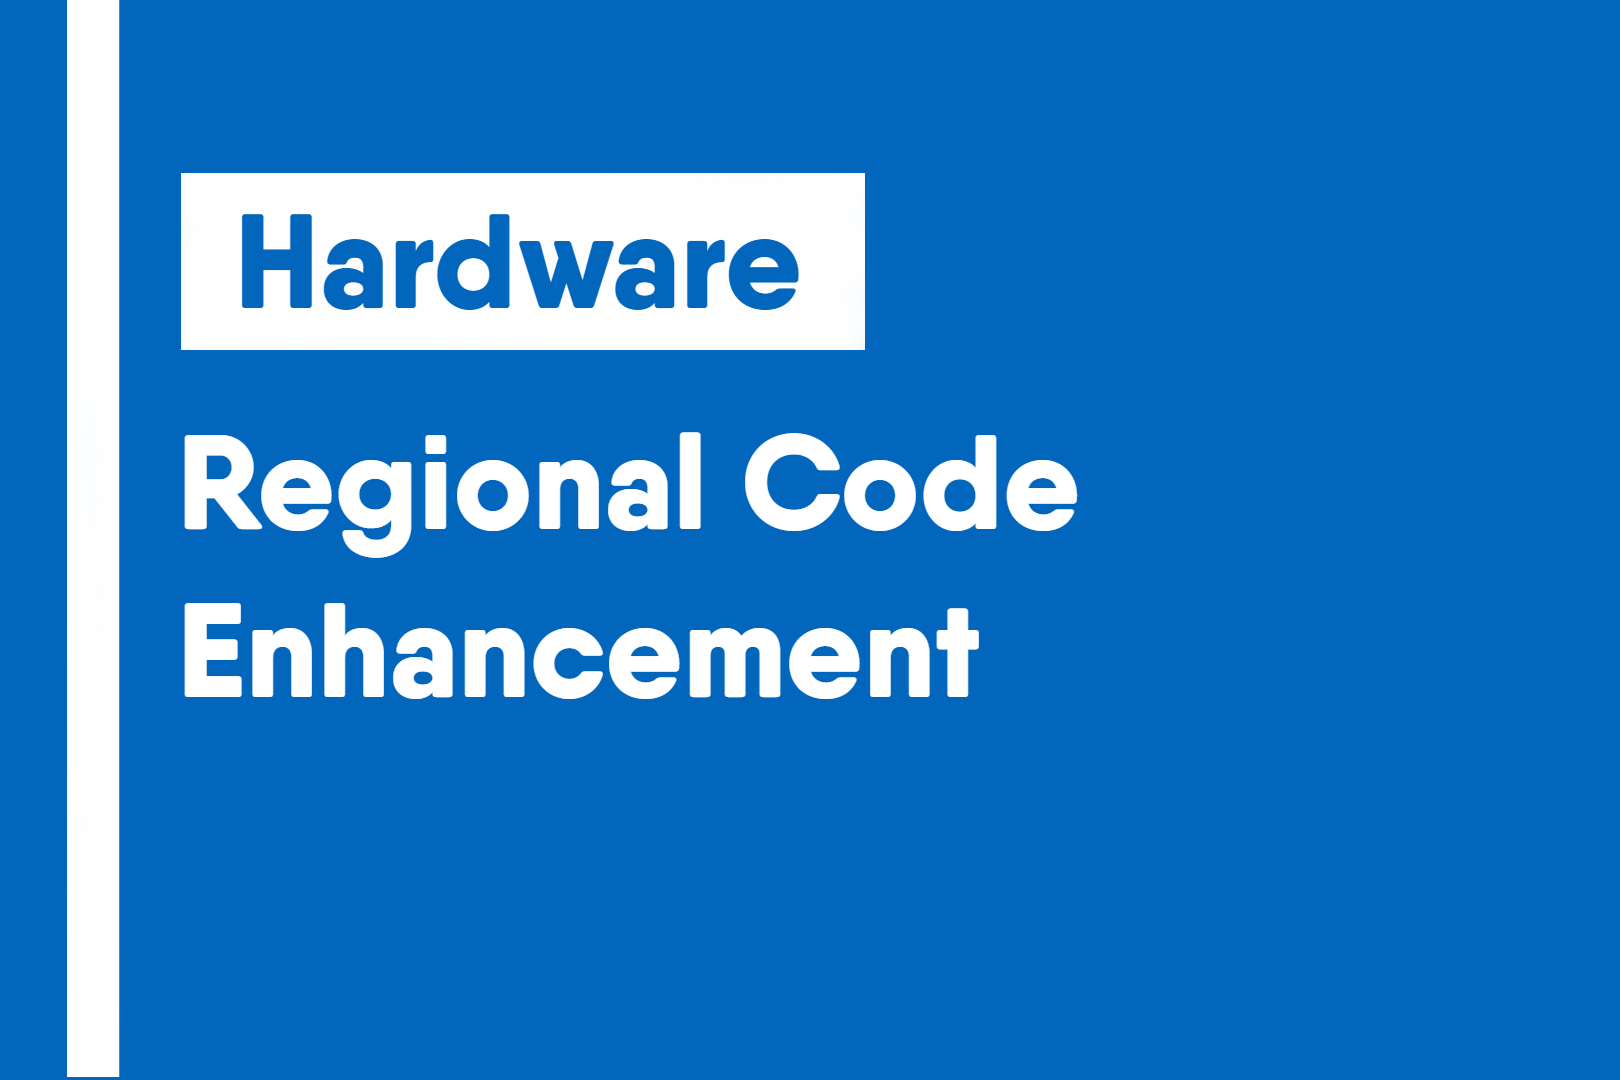 Regional Code Enhancement